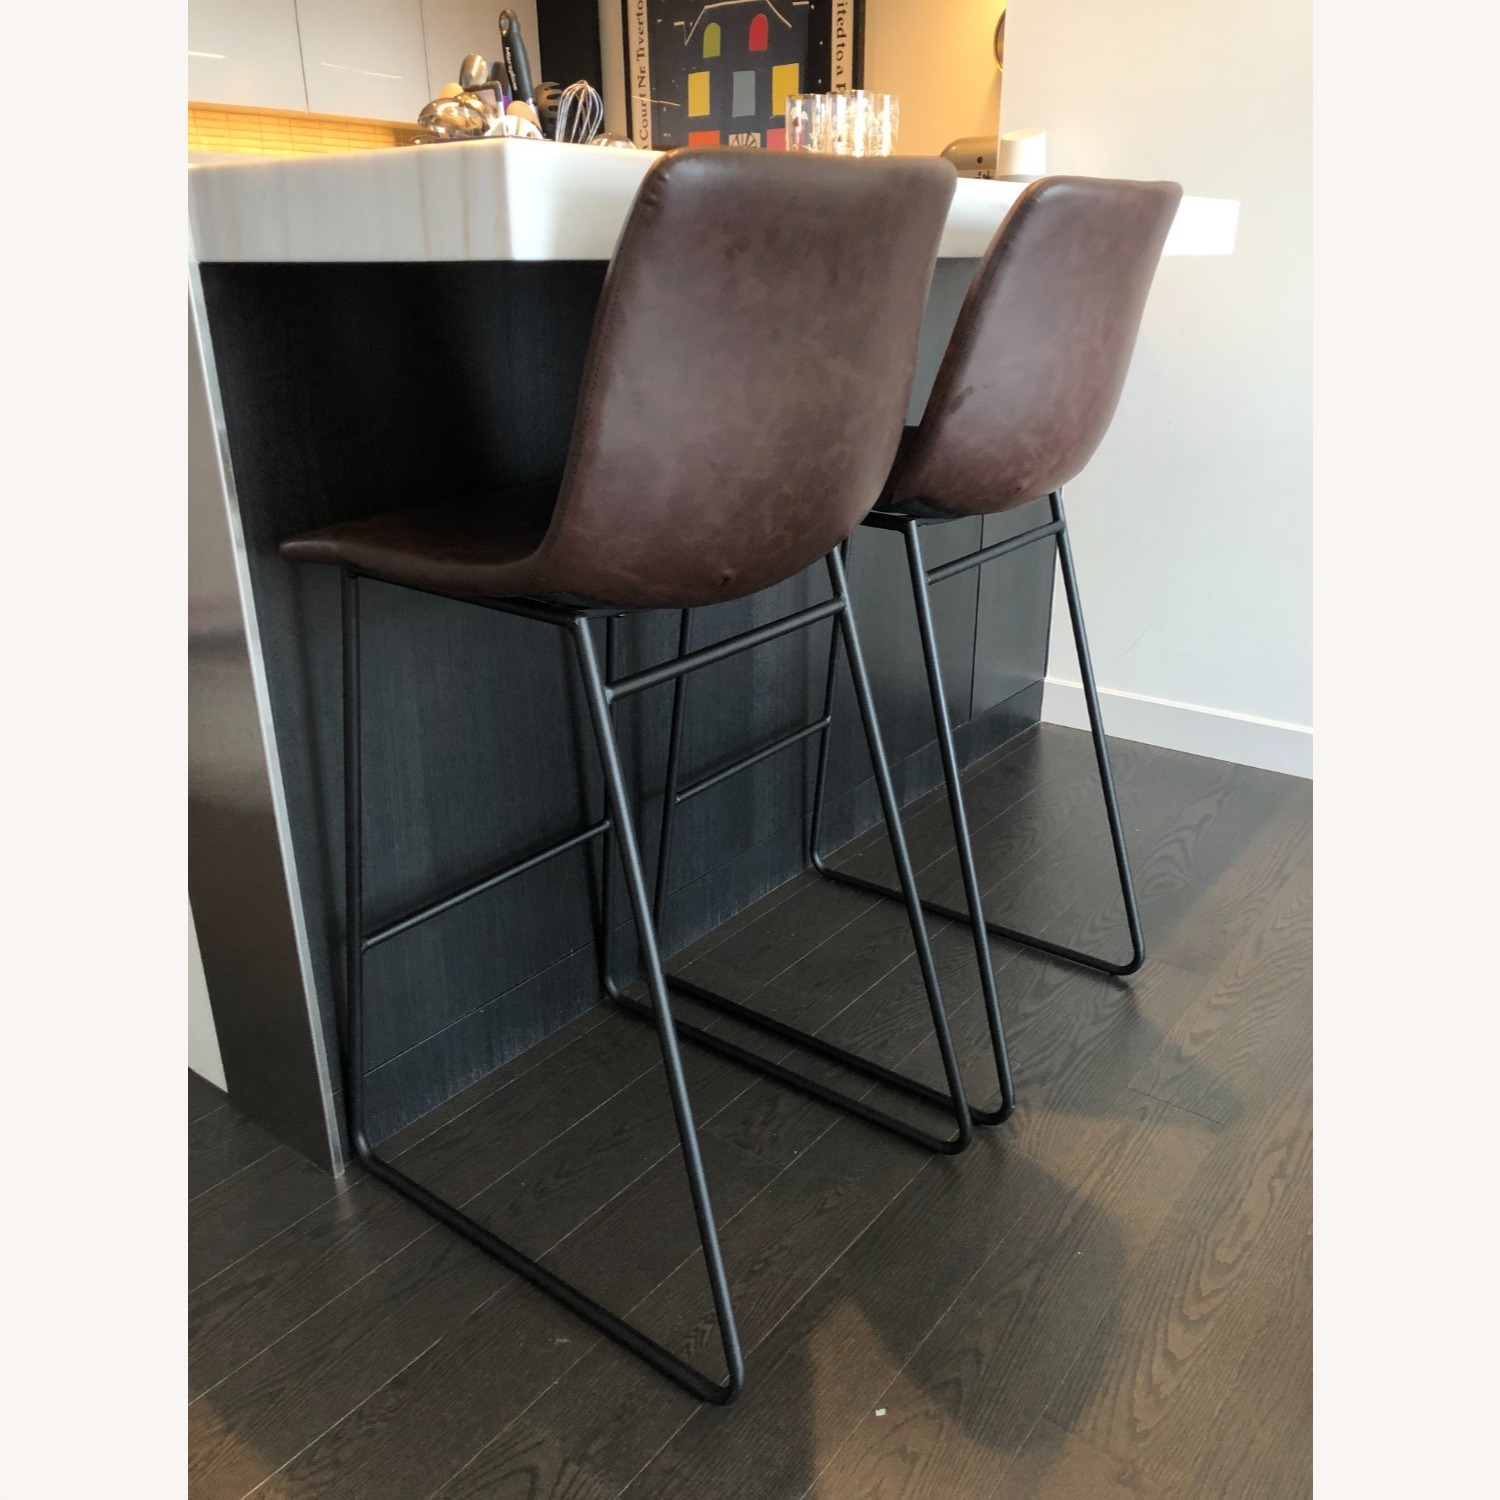 Target Faux Leather Barstools in Vintage Brown (Set of 2) - image-5